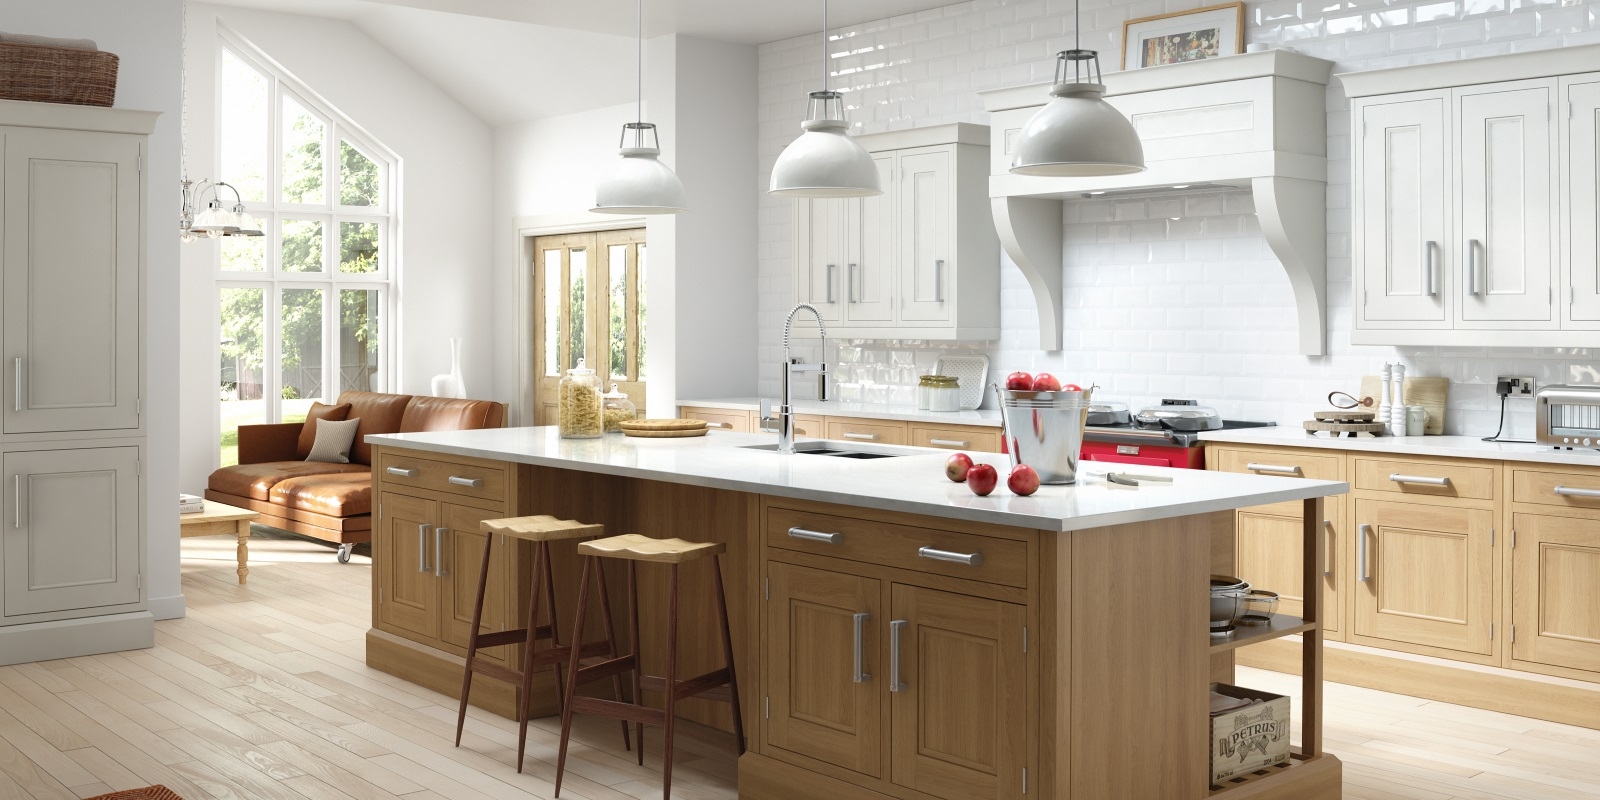 Kitchen Specialists in Perth - Perth Kitchen Centre